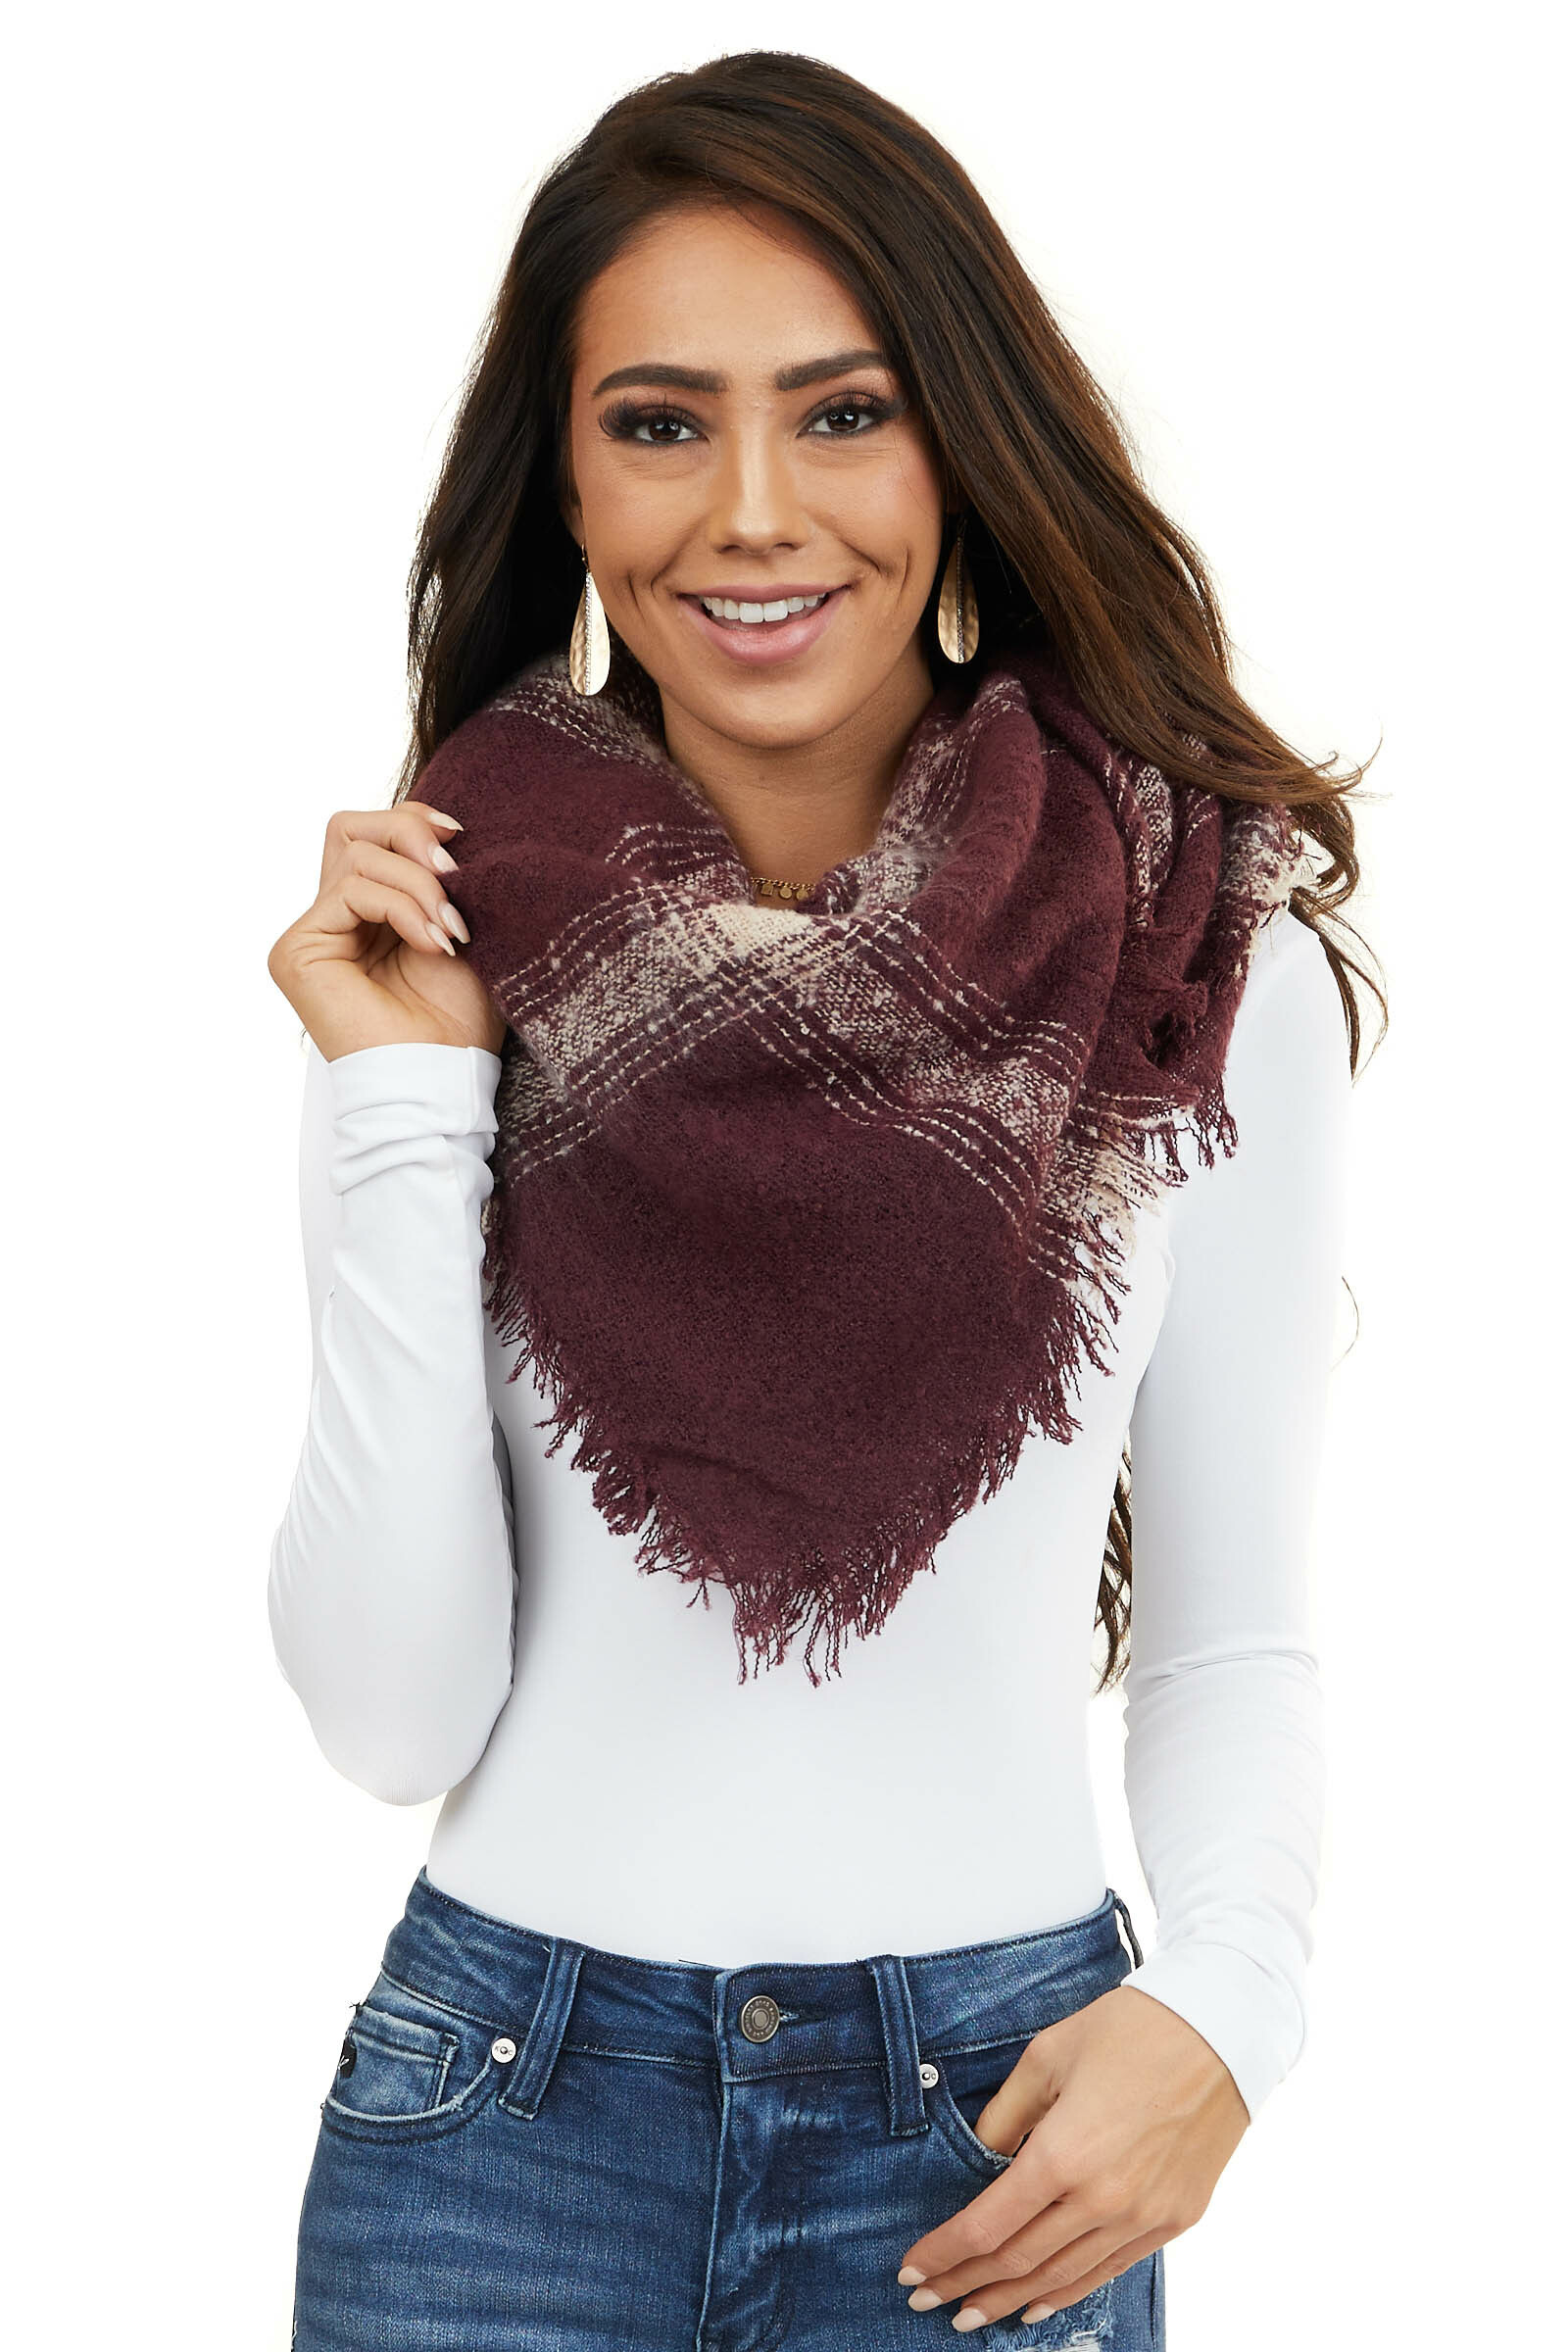 Maroon and White Plaid Print Blanket Scarf with Fringe